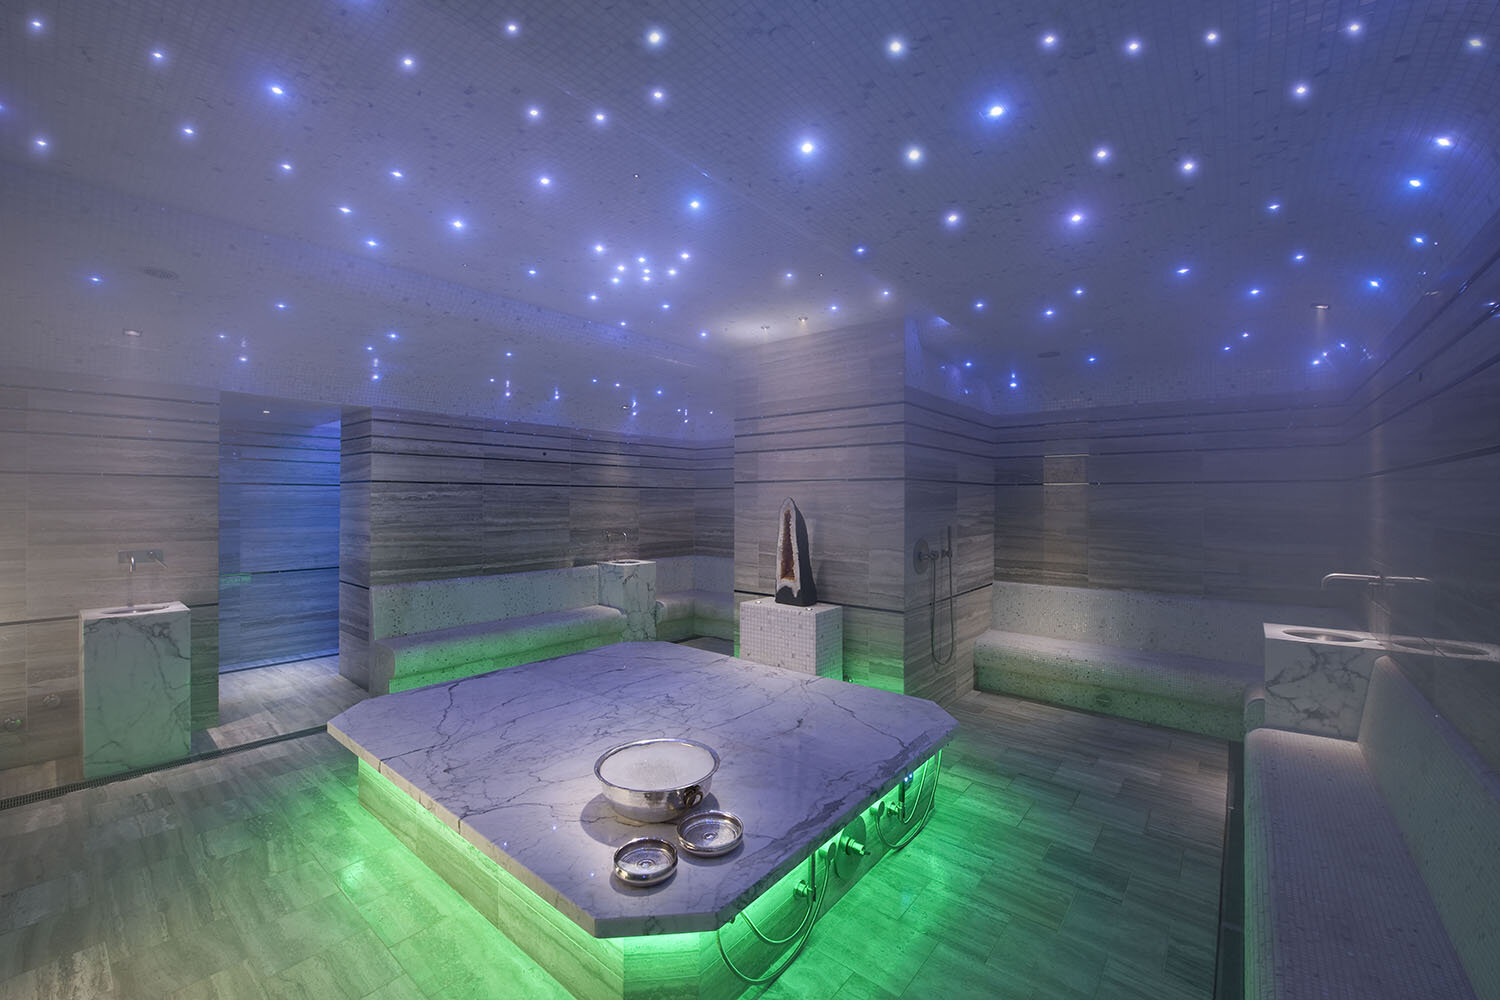 A traditional Turkish experience is provided in the Hammam at Waldorf Astoria Spa Las Vegas.